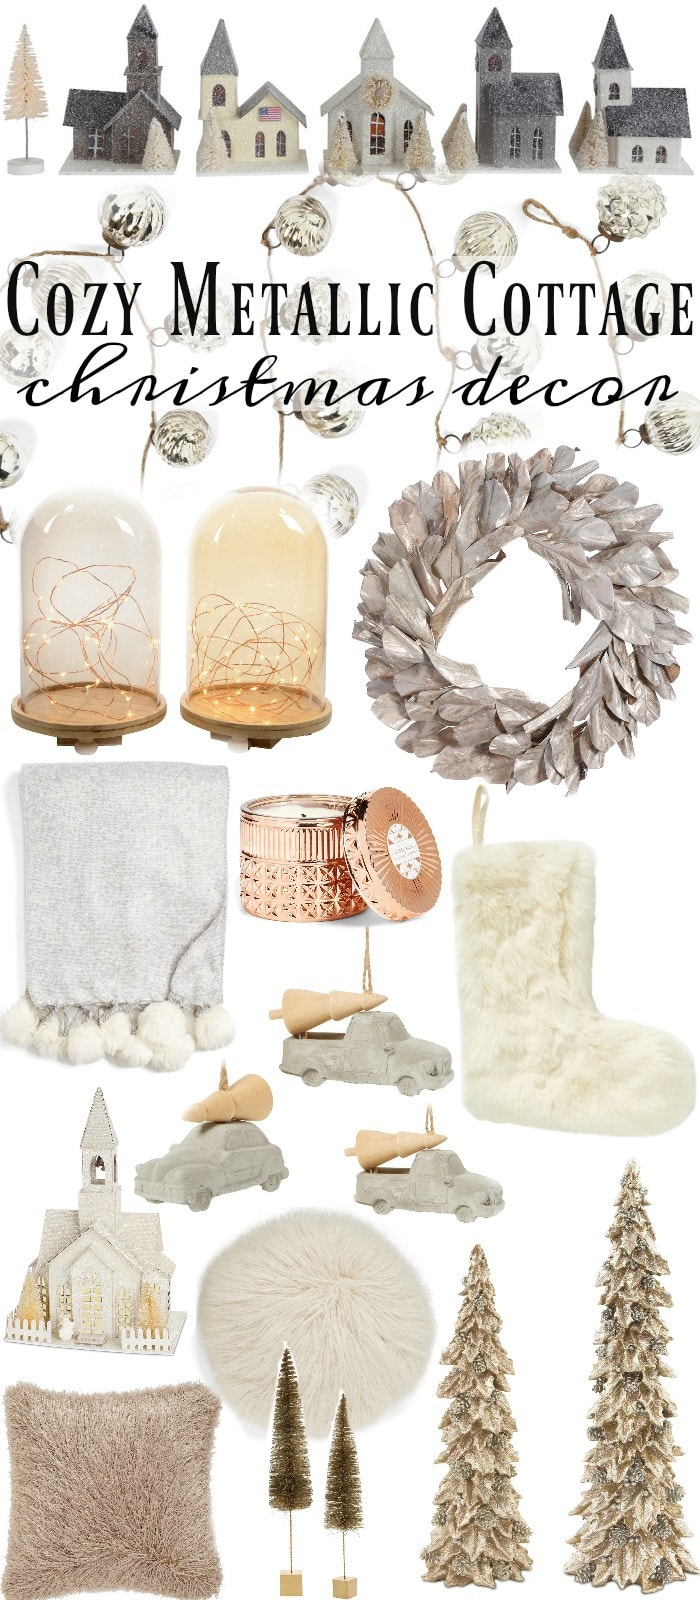 Cozy Metallic Cottage Christmas decor - Great inspiration for a cozy neutral metallic holiday look!